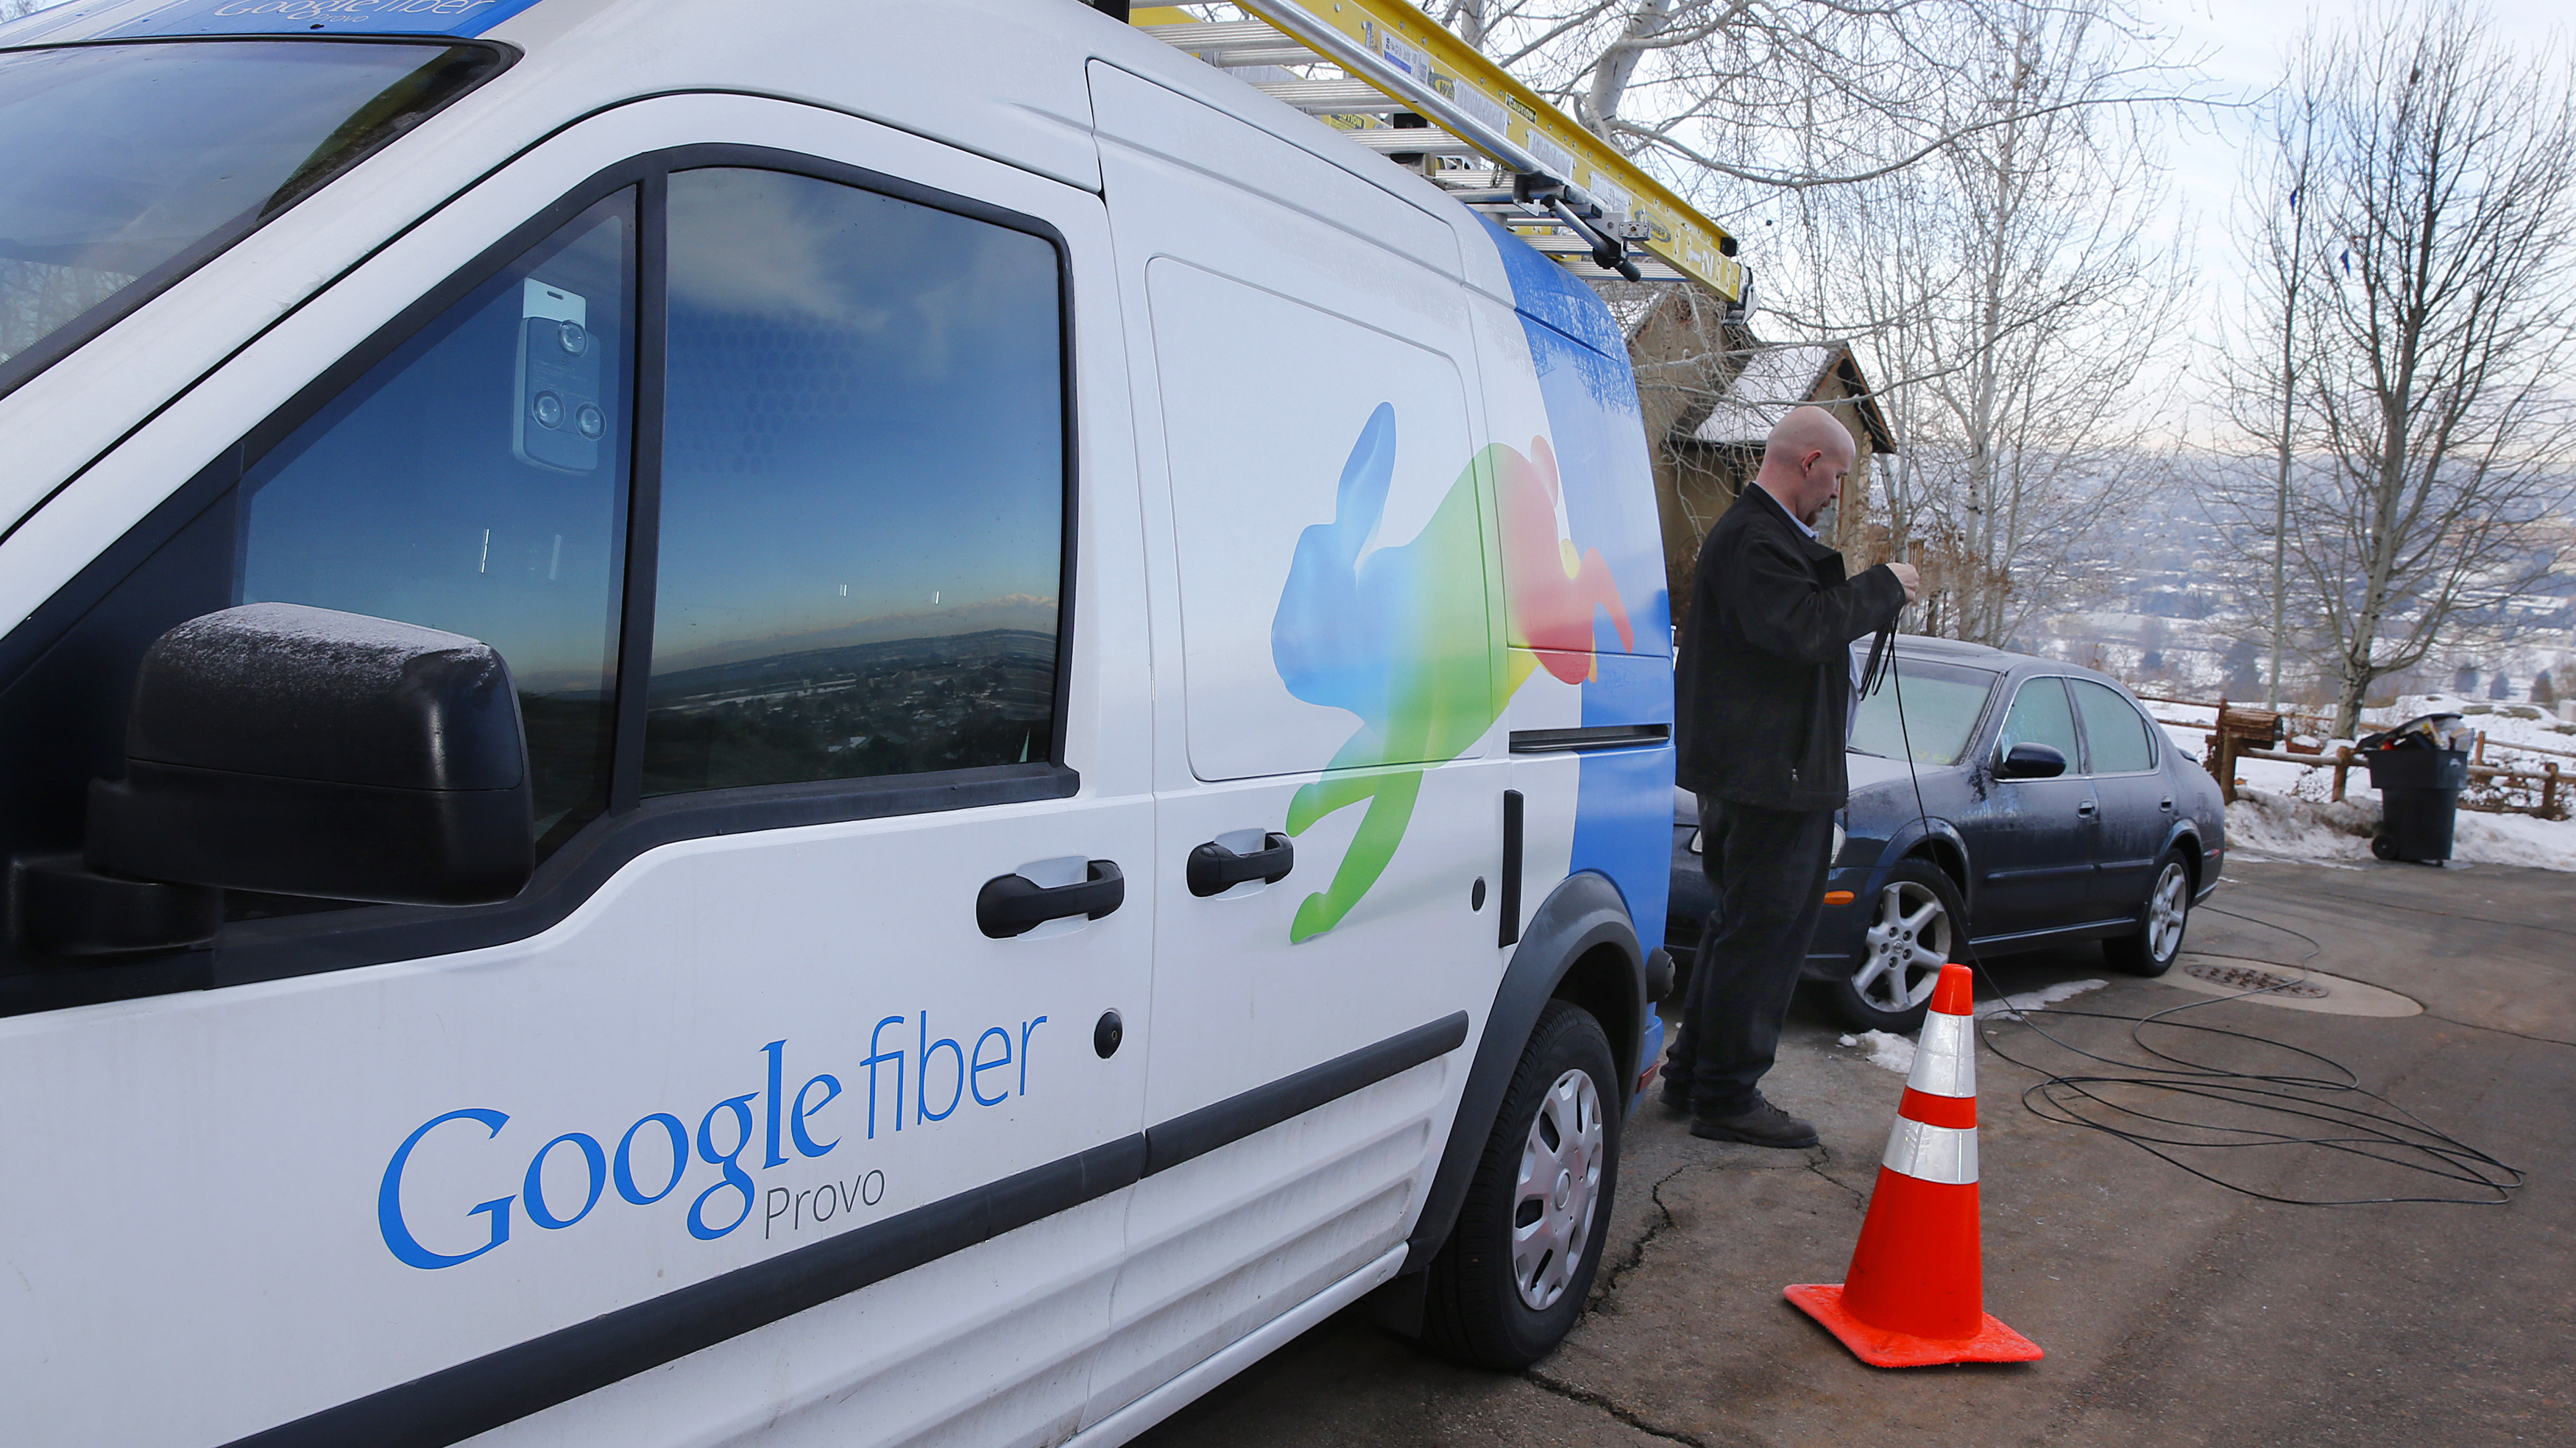 As Cities Push For Their Own Broadband, Cable Firms Say Not So Fast